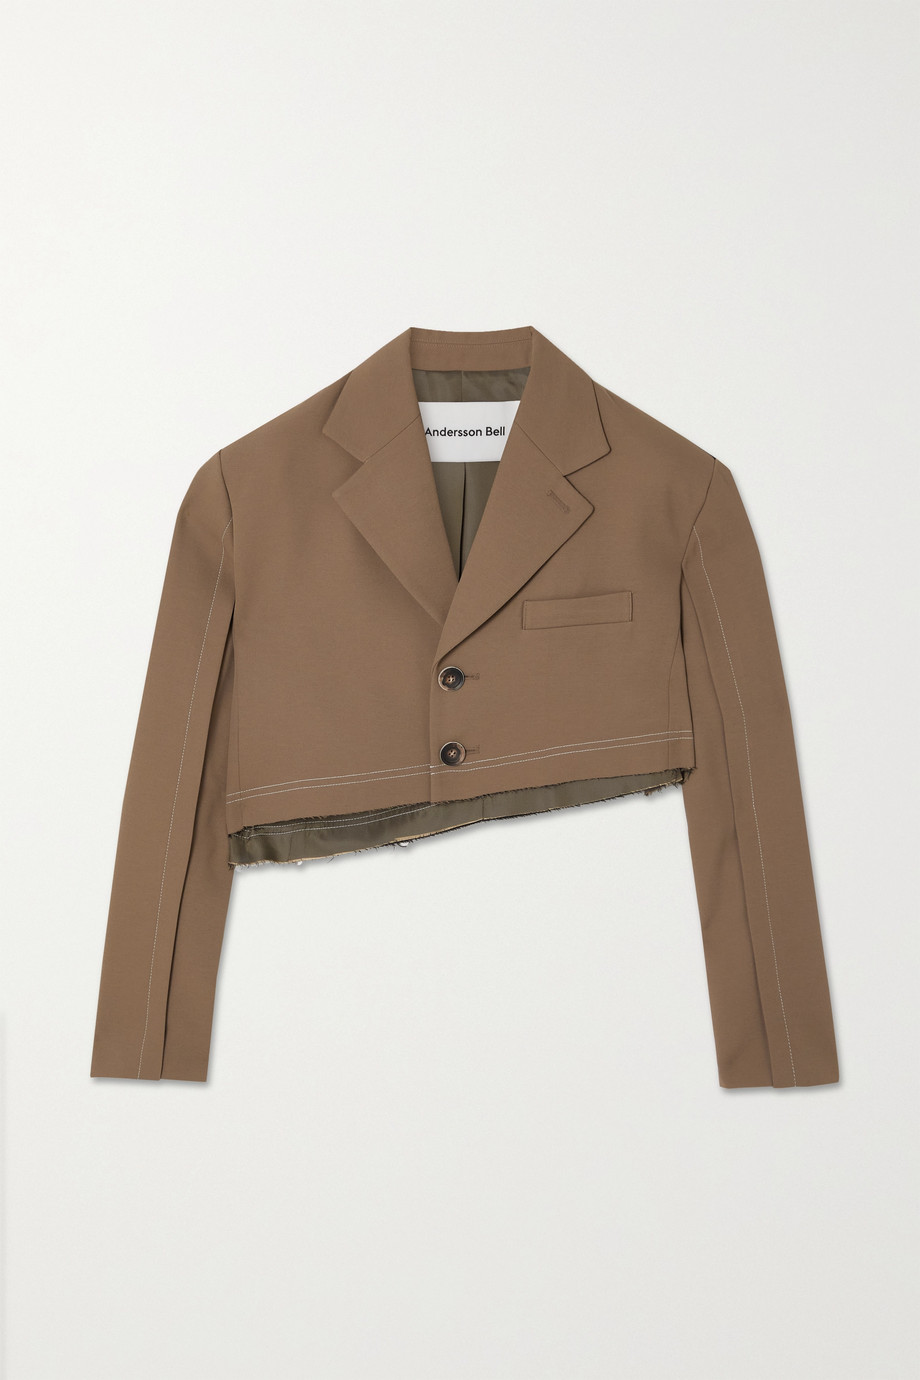 Andersson Bell Saatchi asymmetric cropped two-tone twill blazer